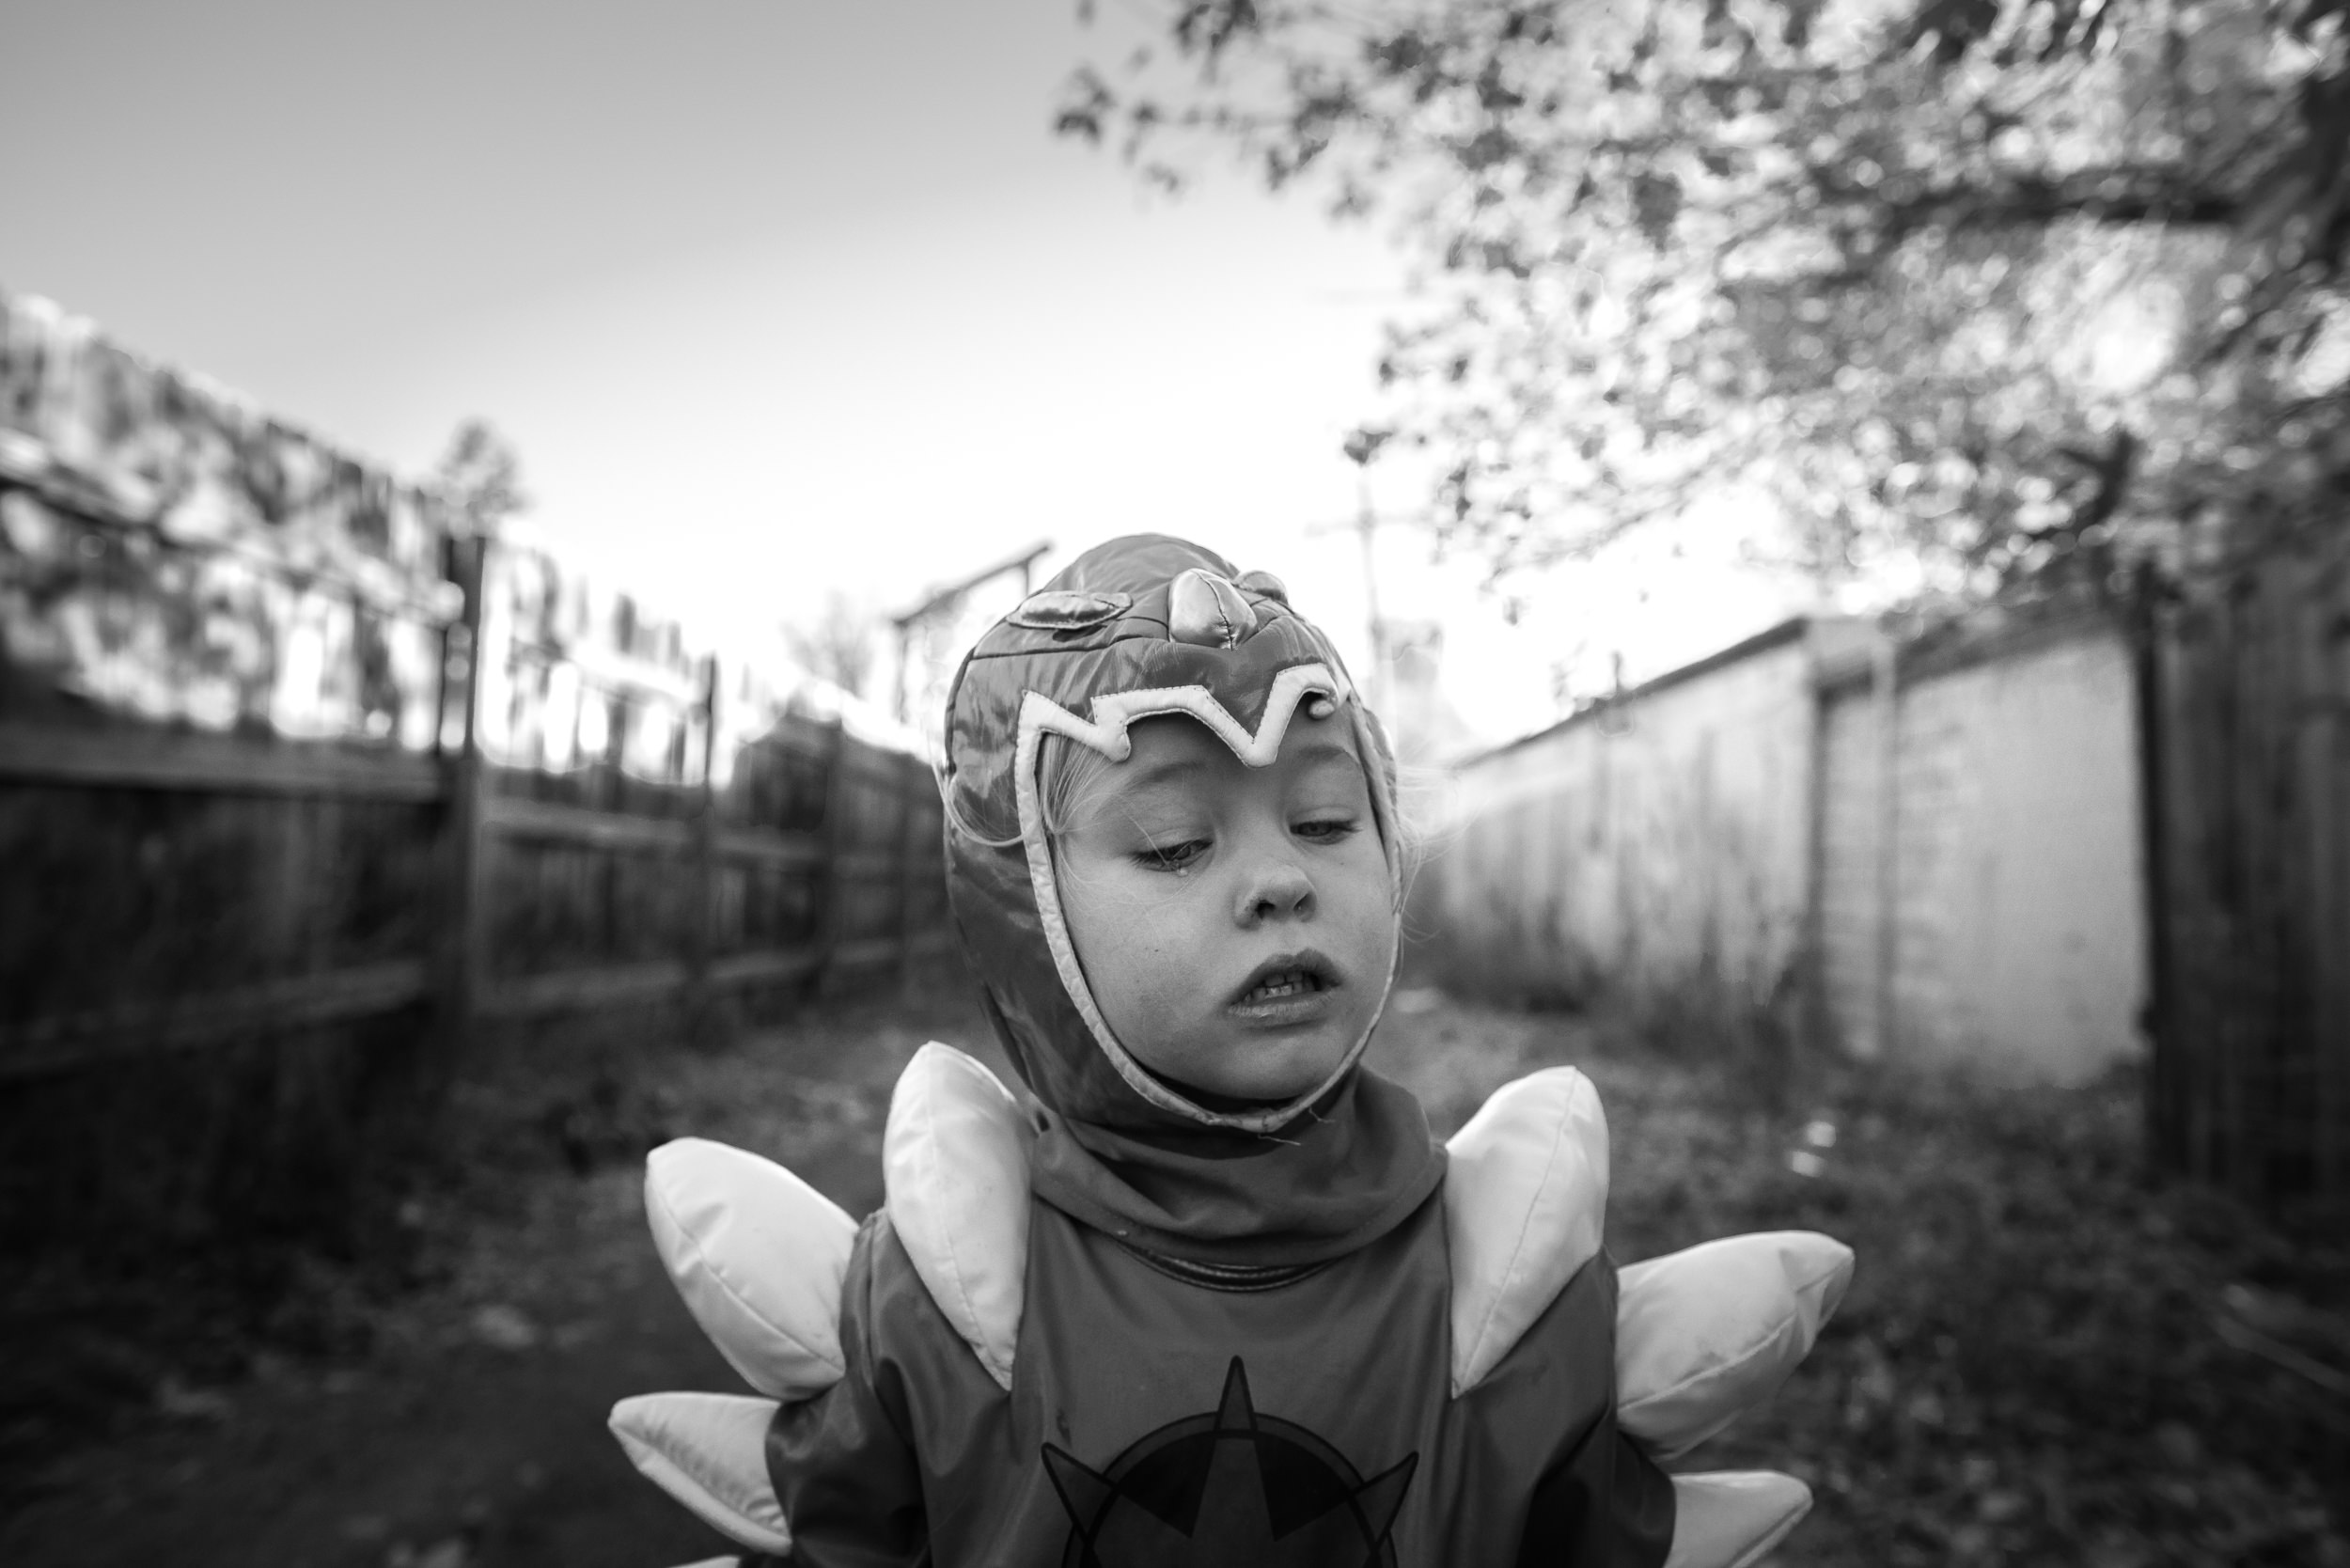 Molly Rees Photo - Black and White Documentary Childhood Photography - Portrait of girl in Power Rangers Halloween costume crying by M. Menschel